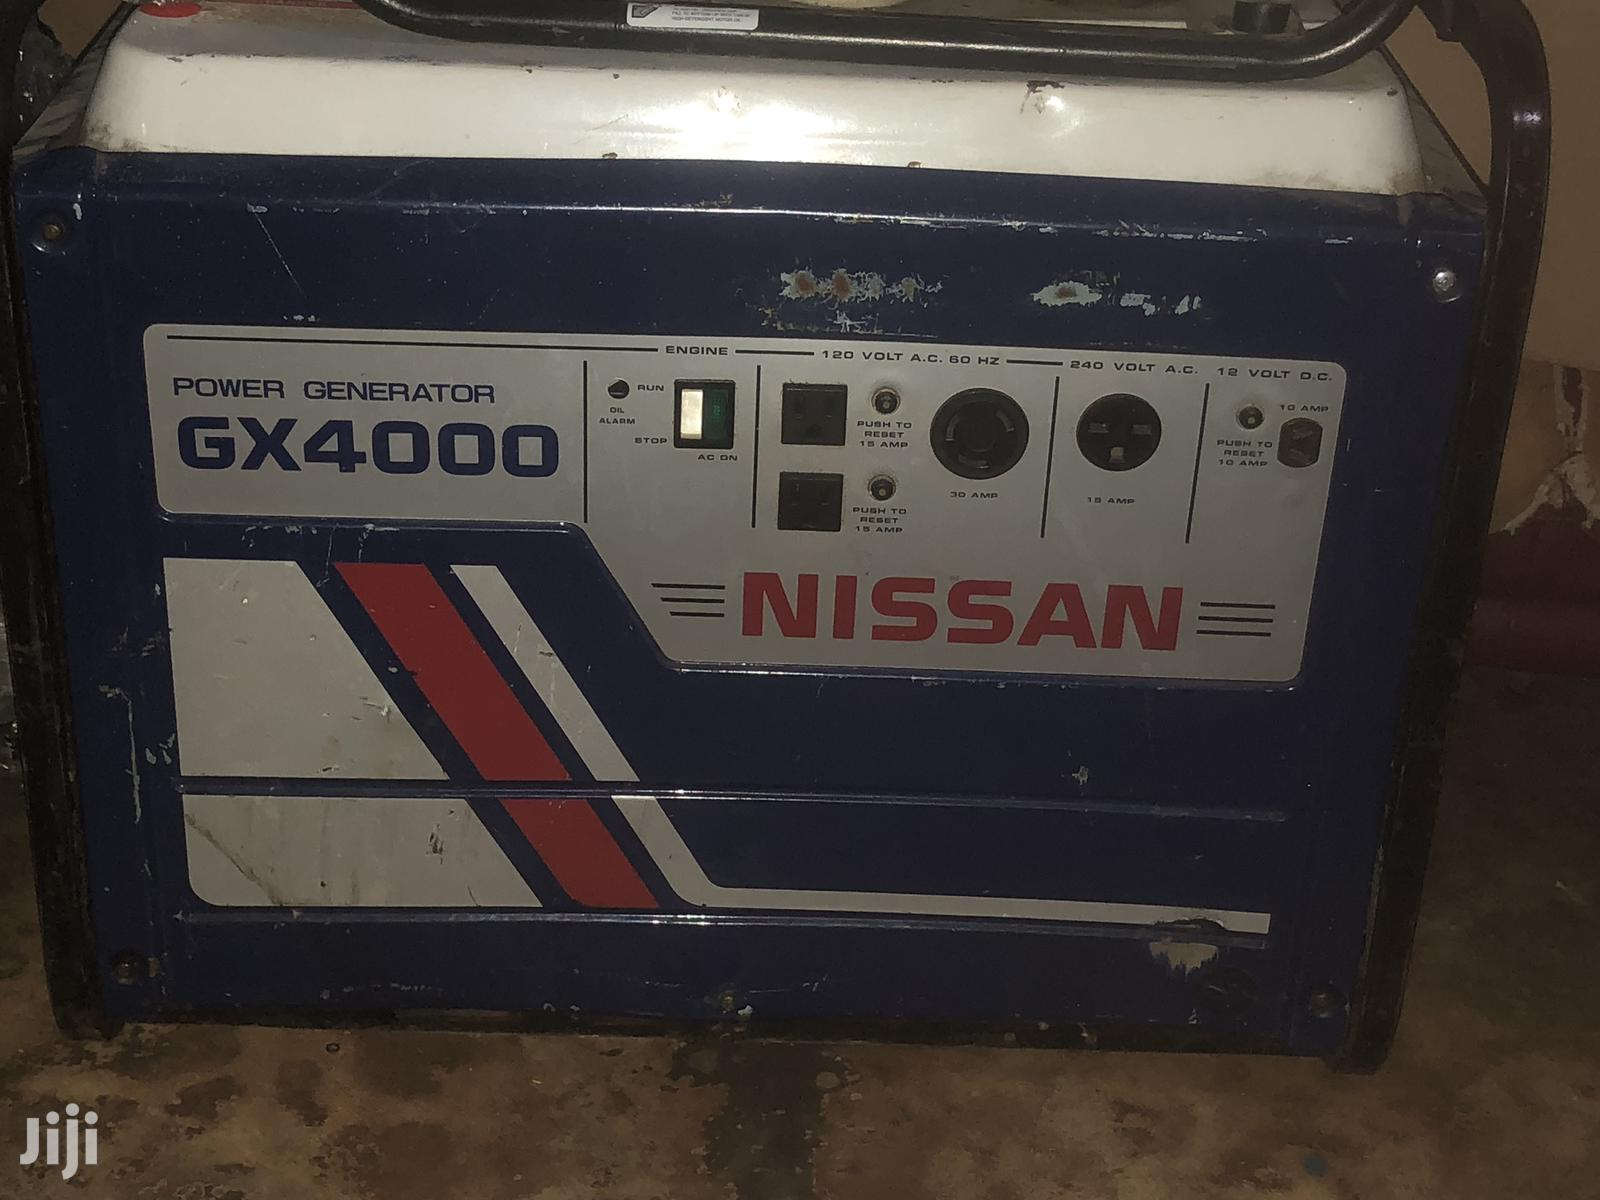 GX 4000 Nissan Generator | Electrical Equipment for sale in Ga West Municipal, Greater Accra, Ghana